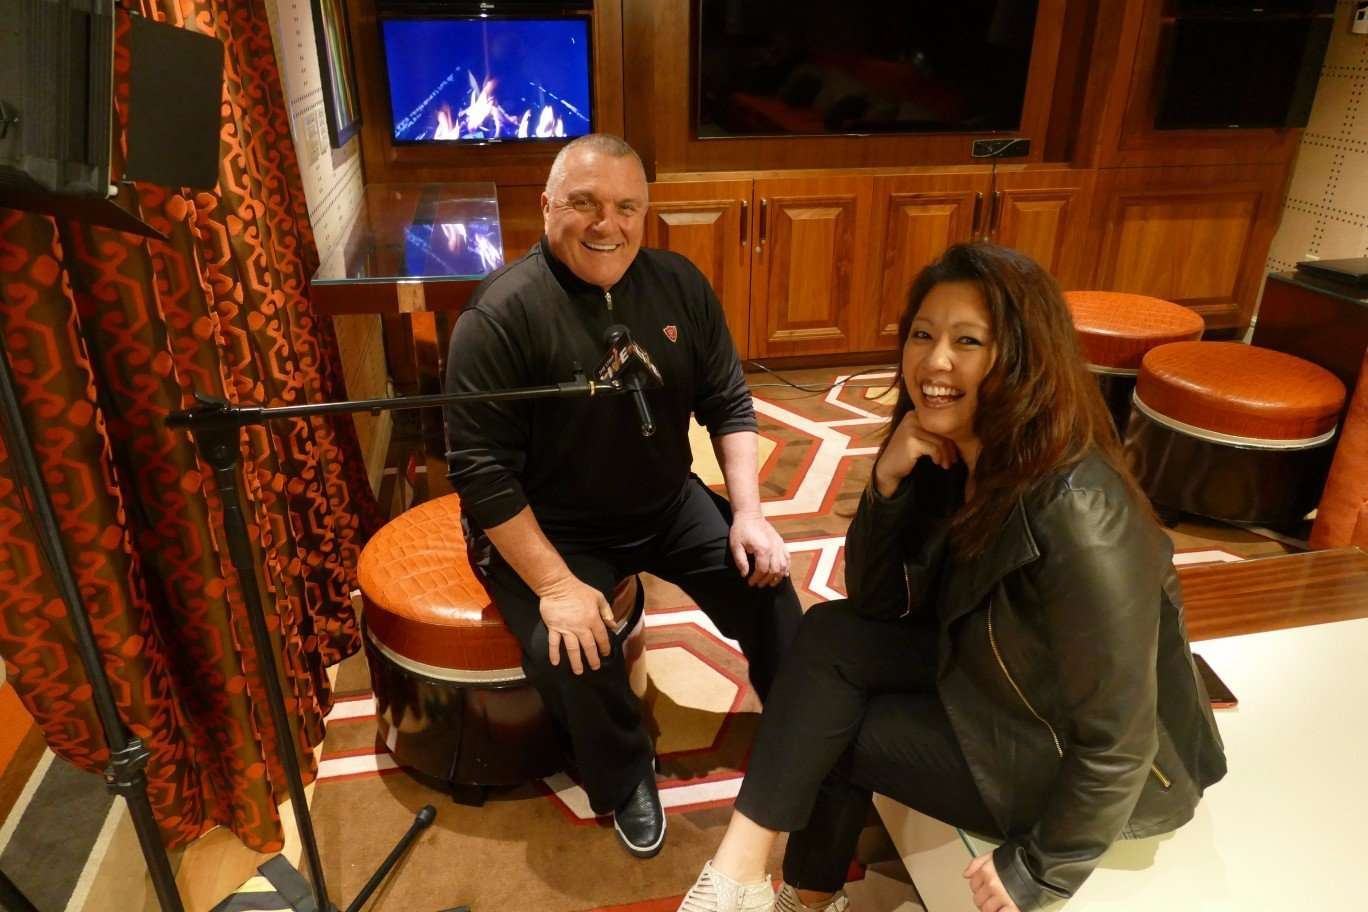 Fireside chat with Rudy Ruettiger and Maria Ngo - MasterCastLive.com